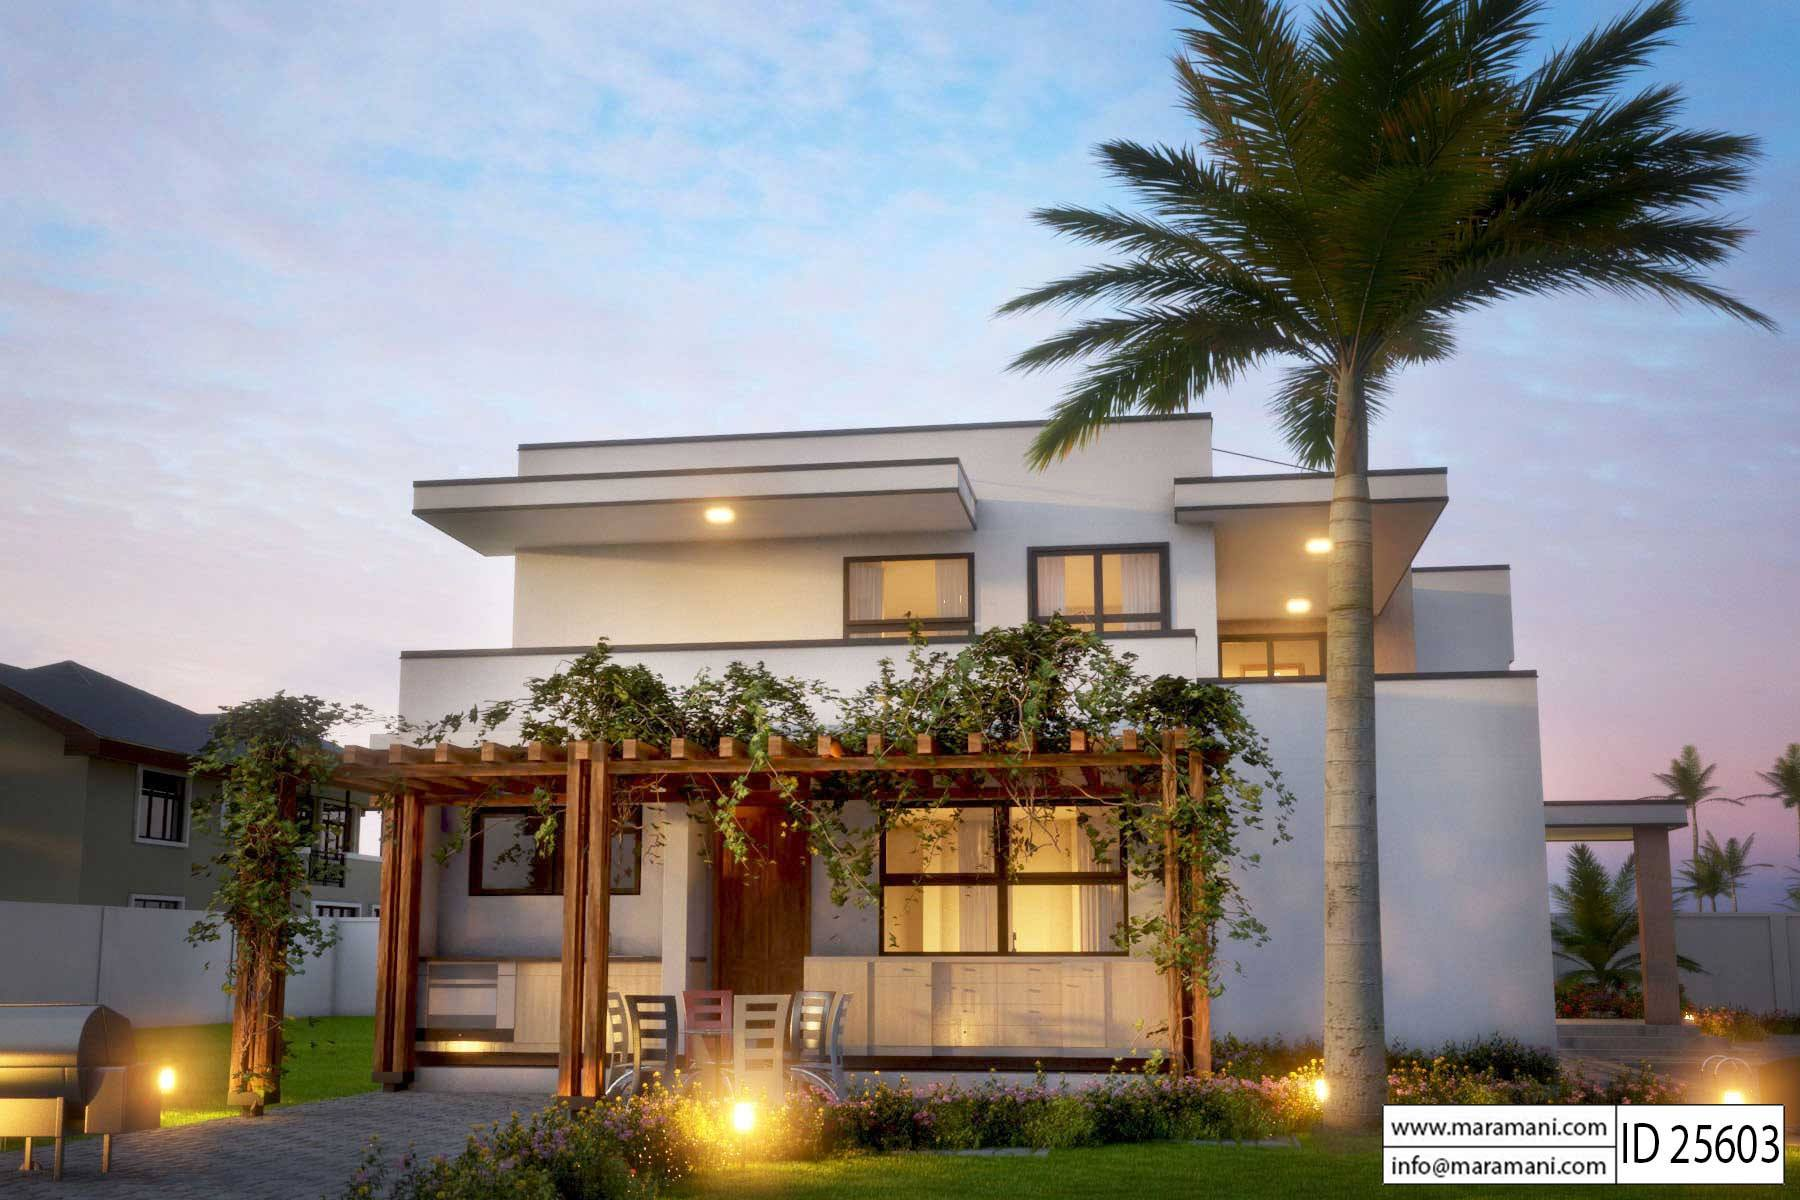 Modern 5 bedroom house design id 25603 floor plans by maramani